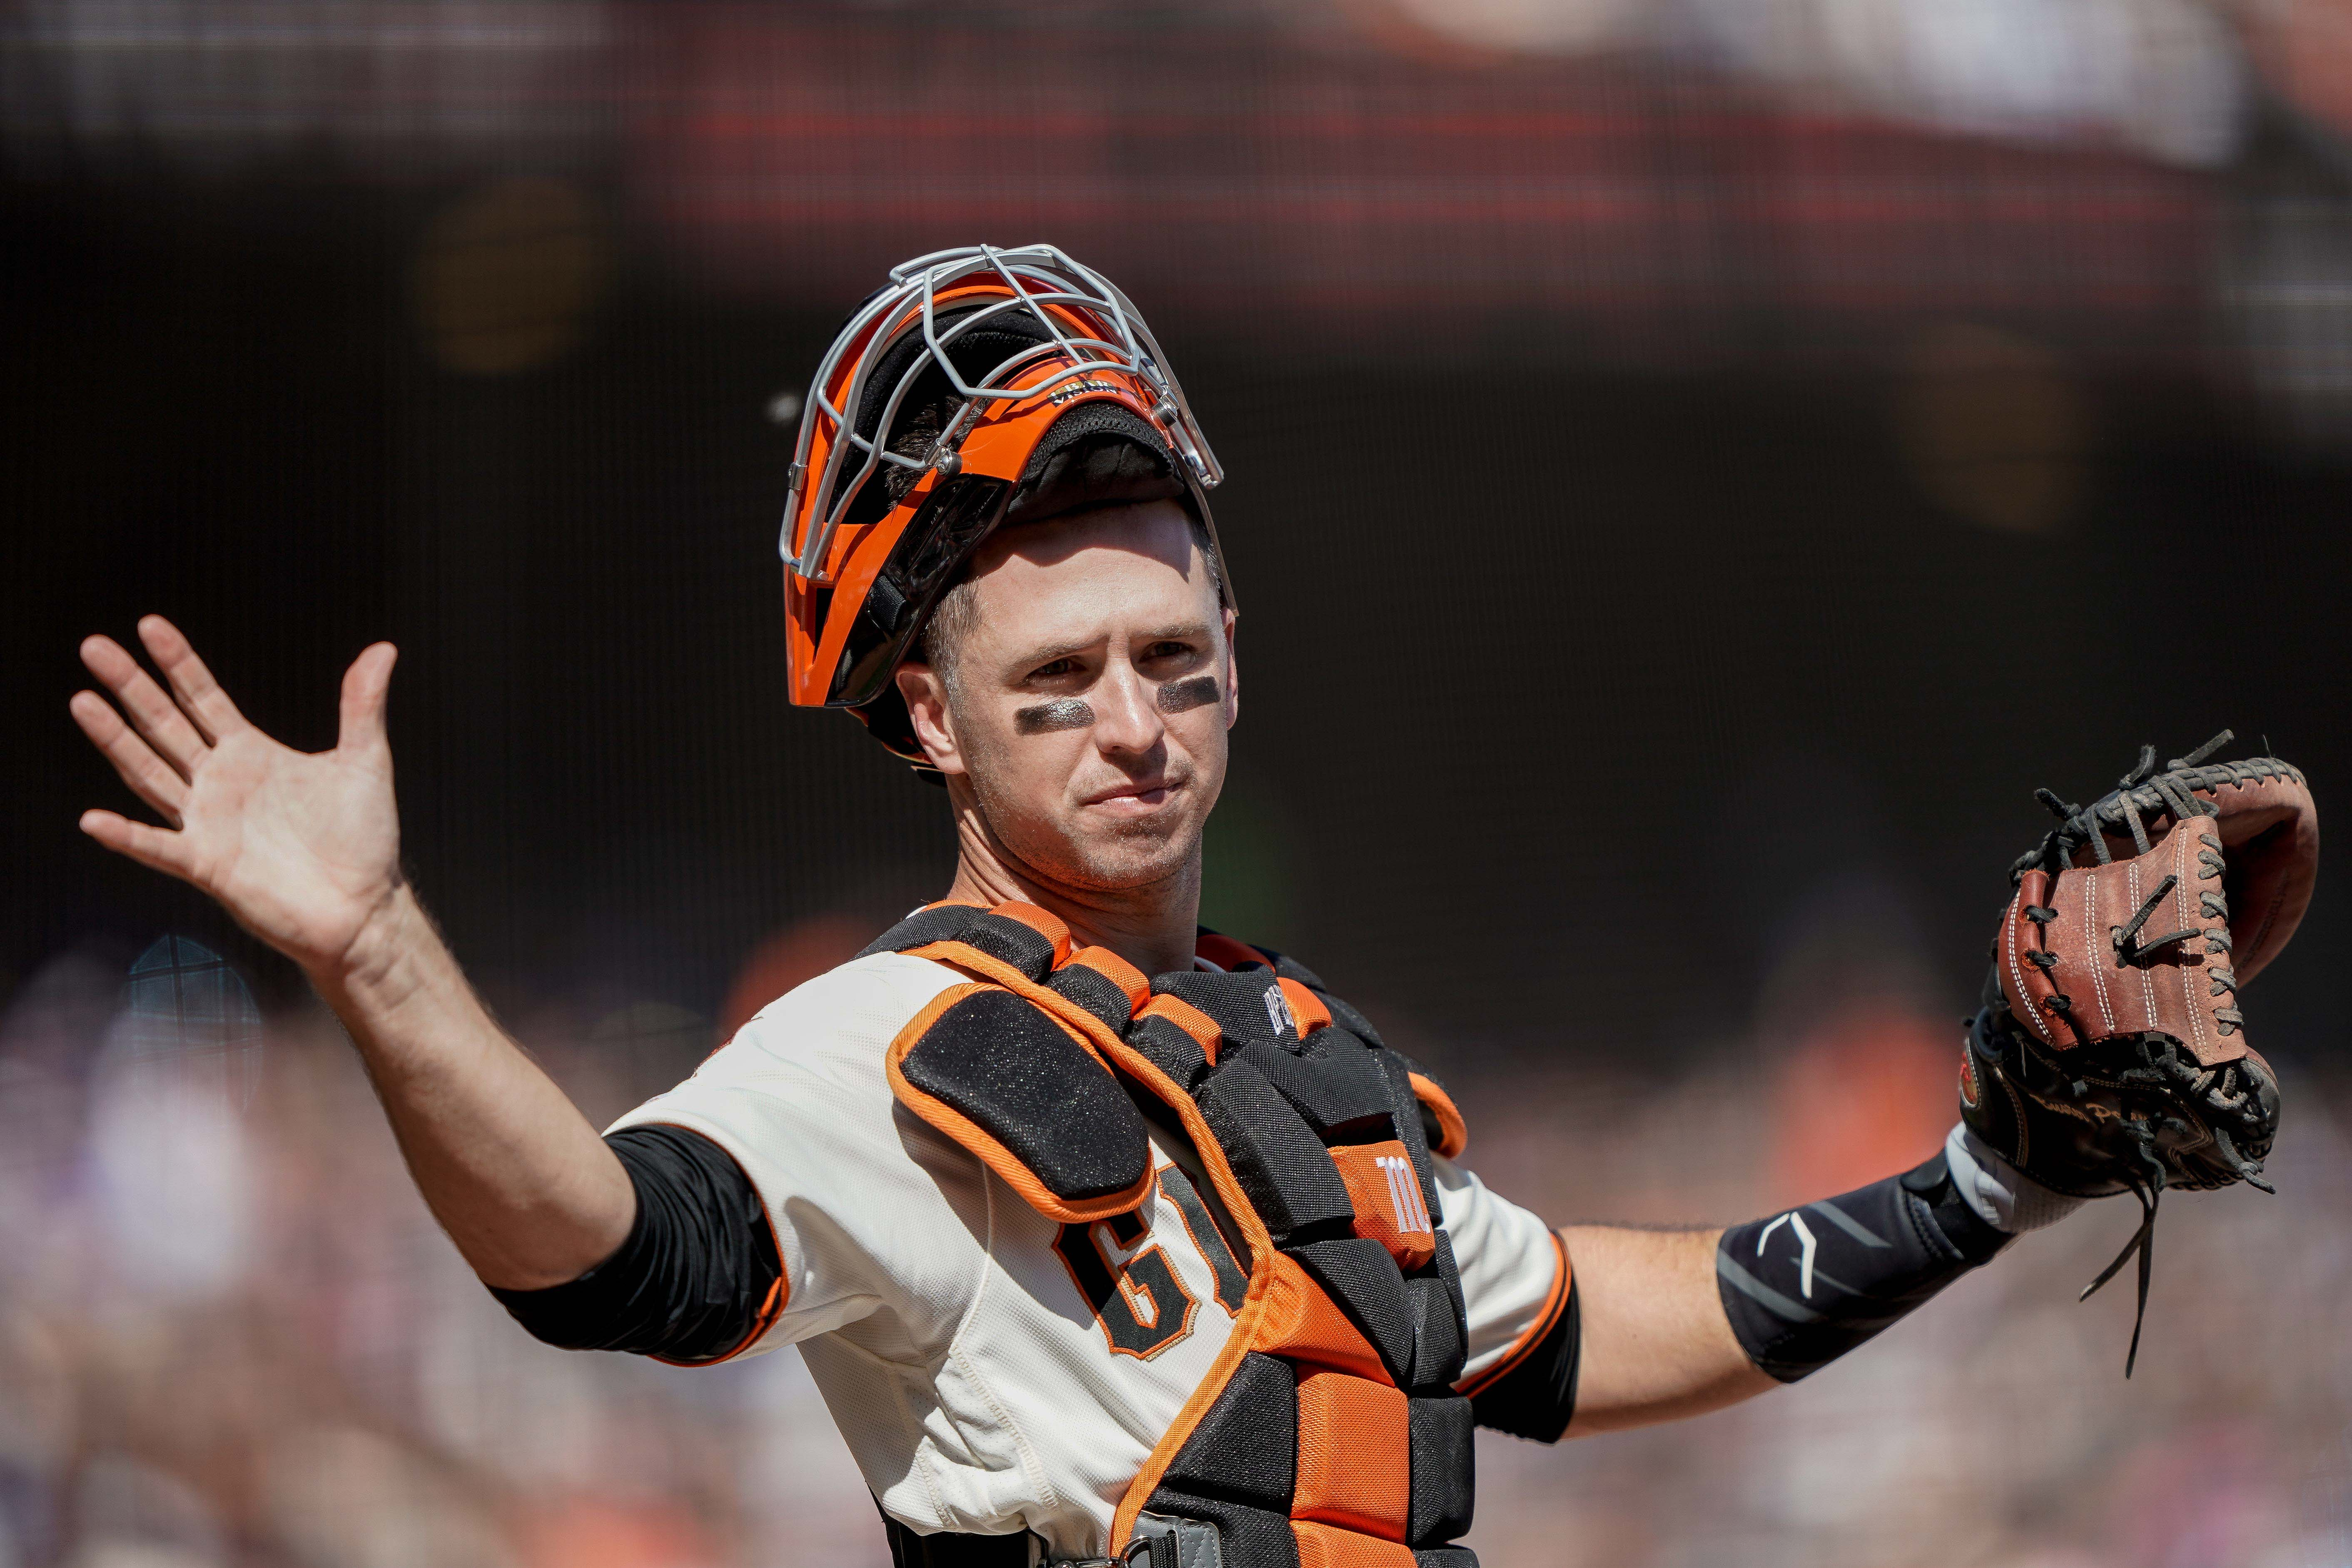 Catcher Disappointment: Buster Posey - Baseball Prospectus